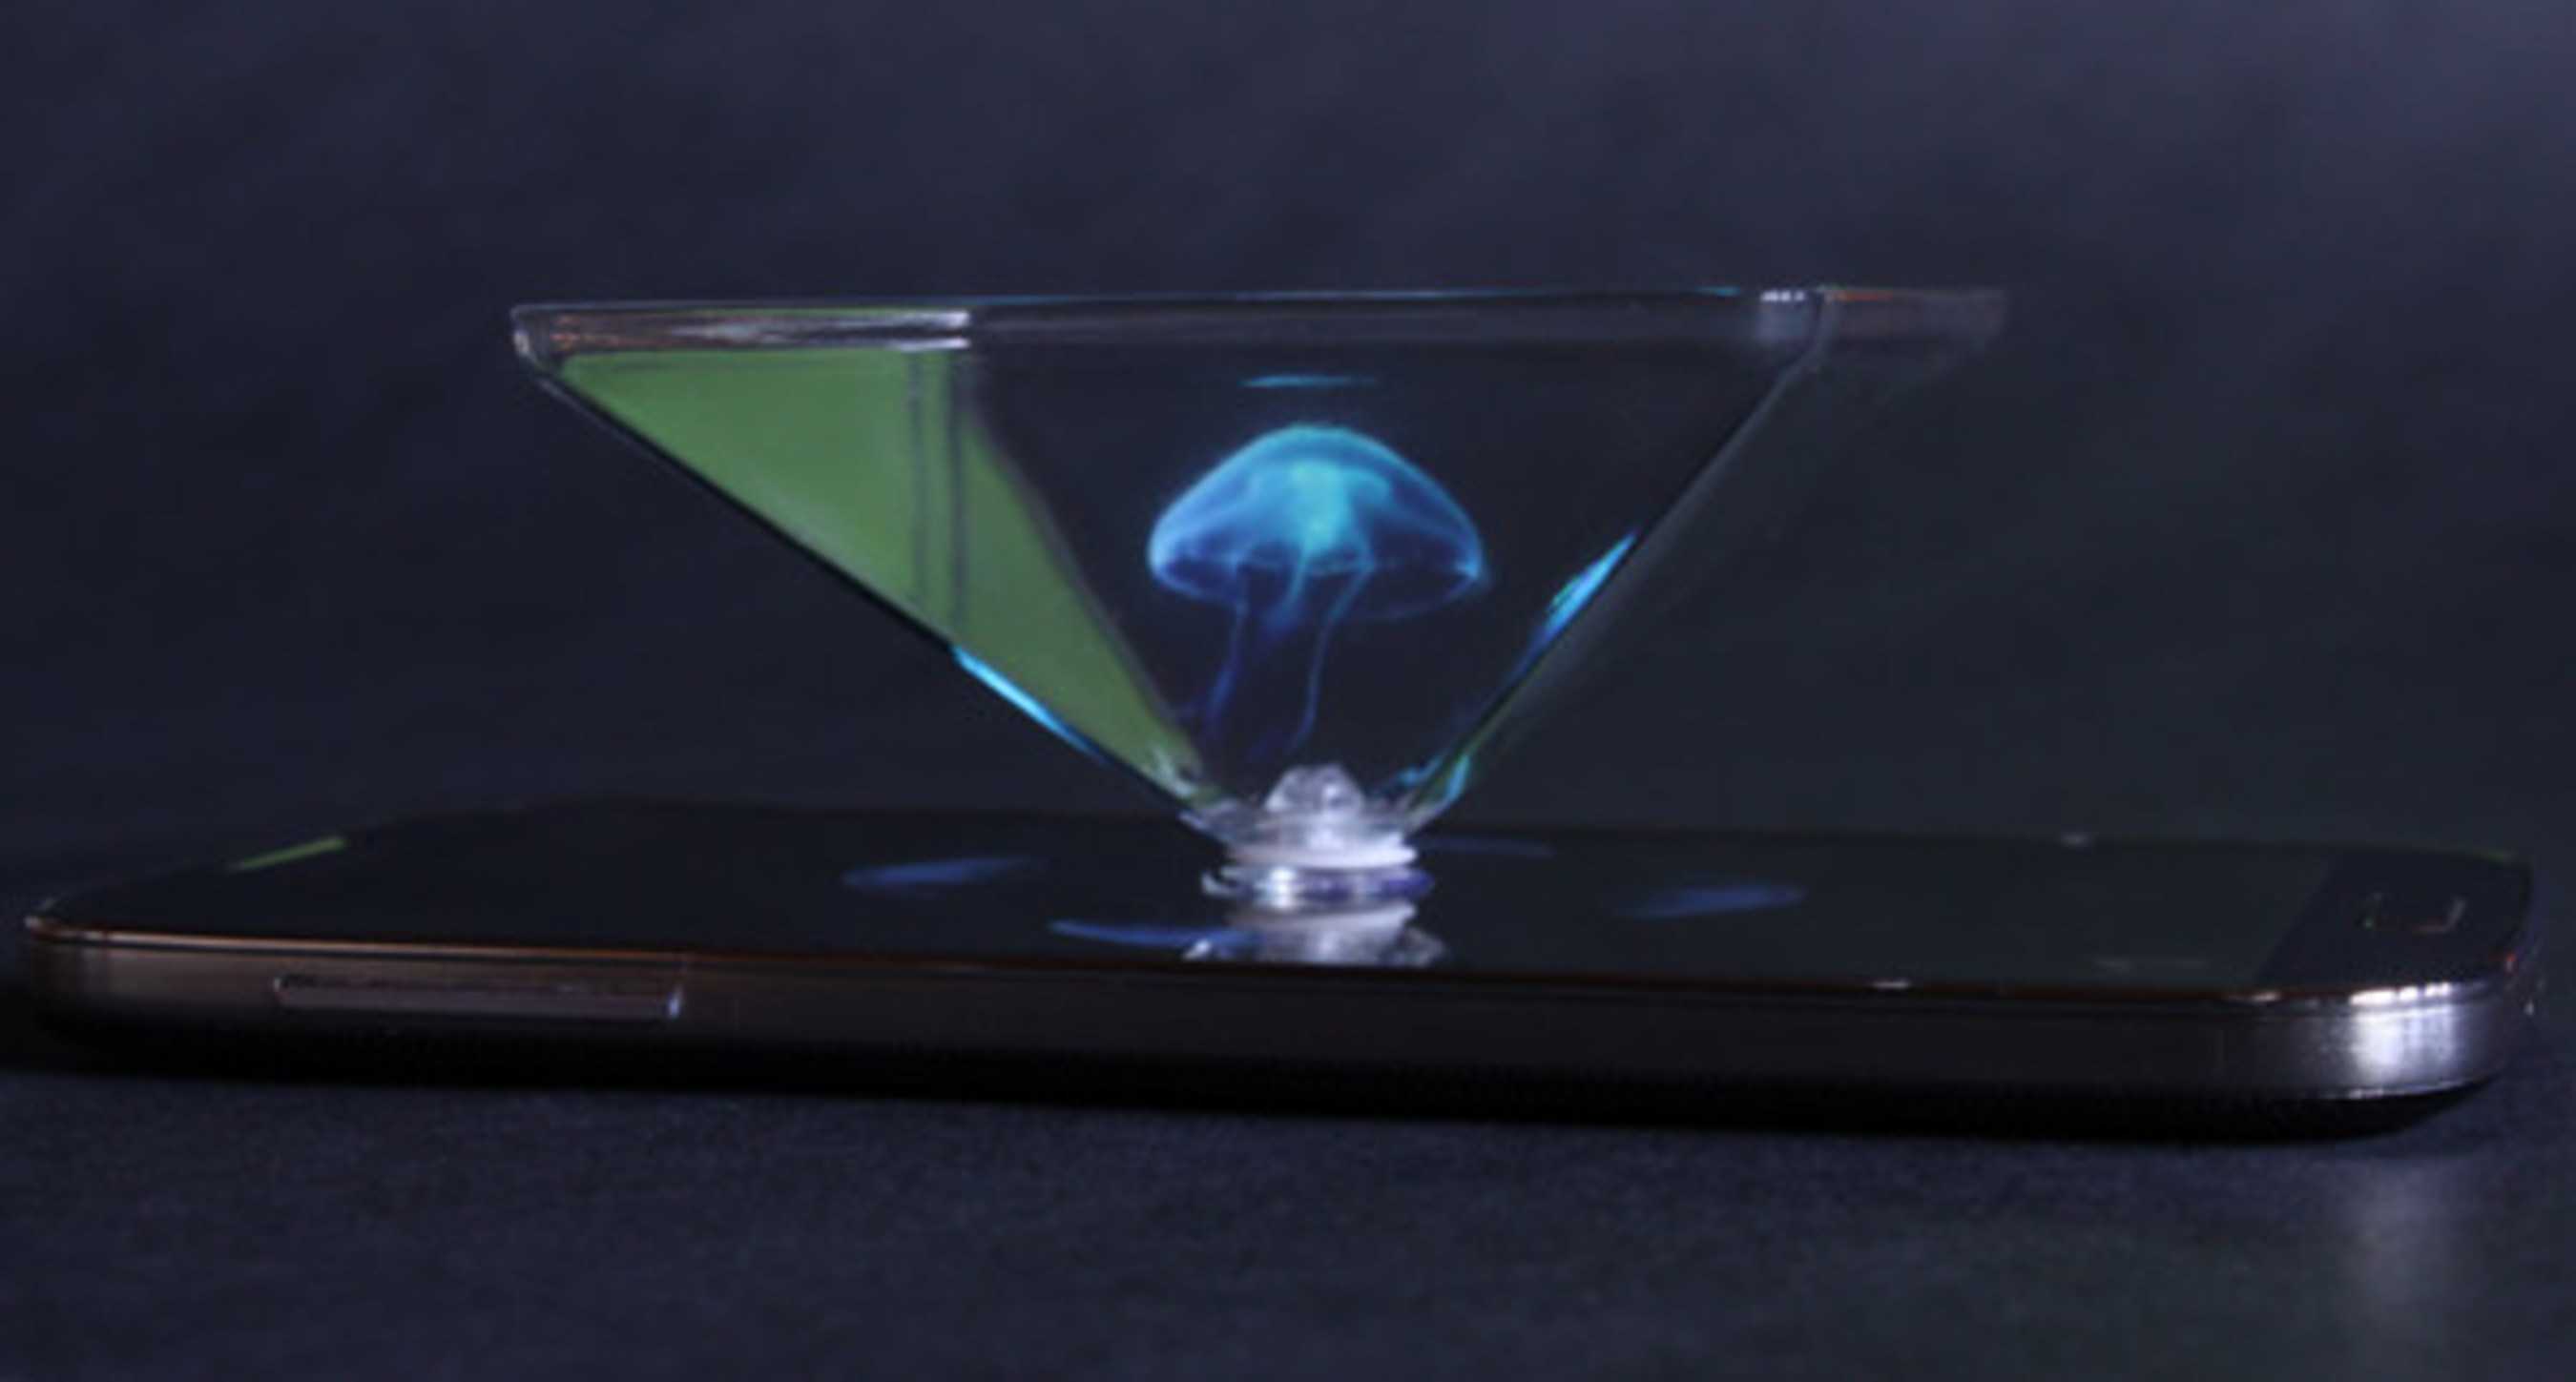 Holographic-Like Projection Now Possible via Smartphone